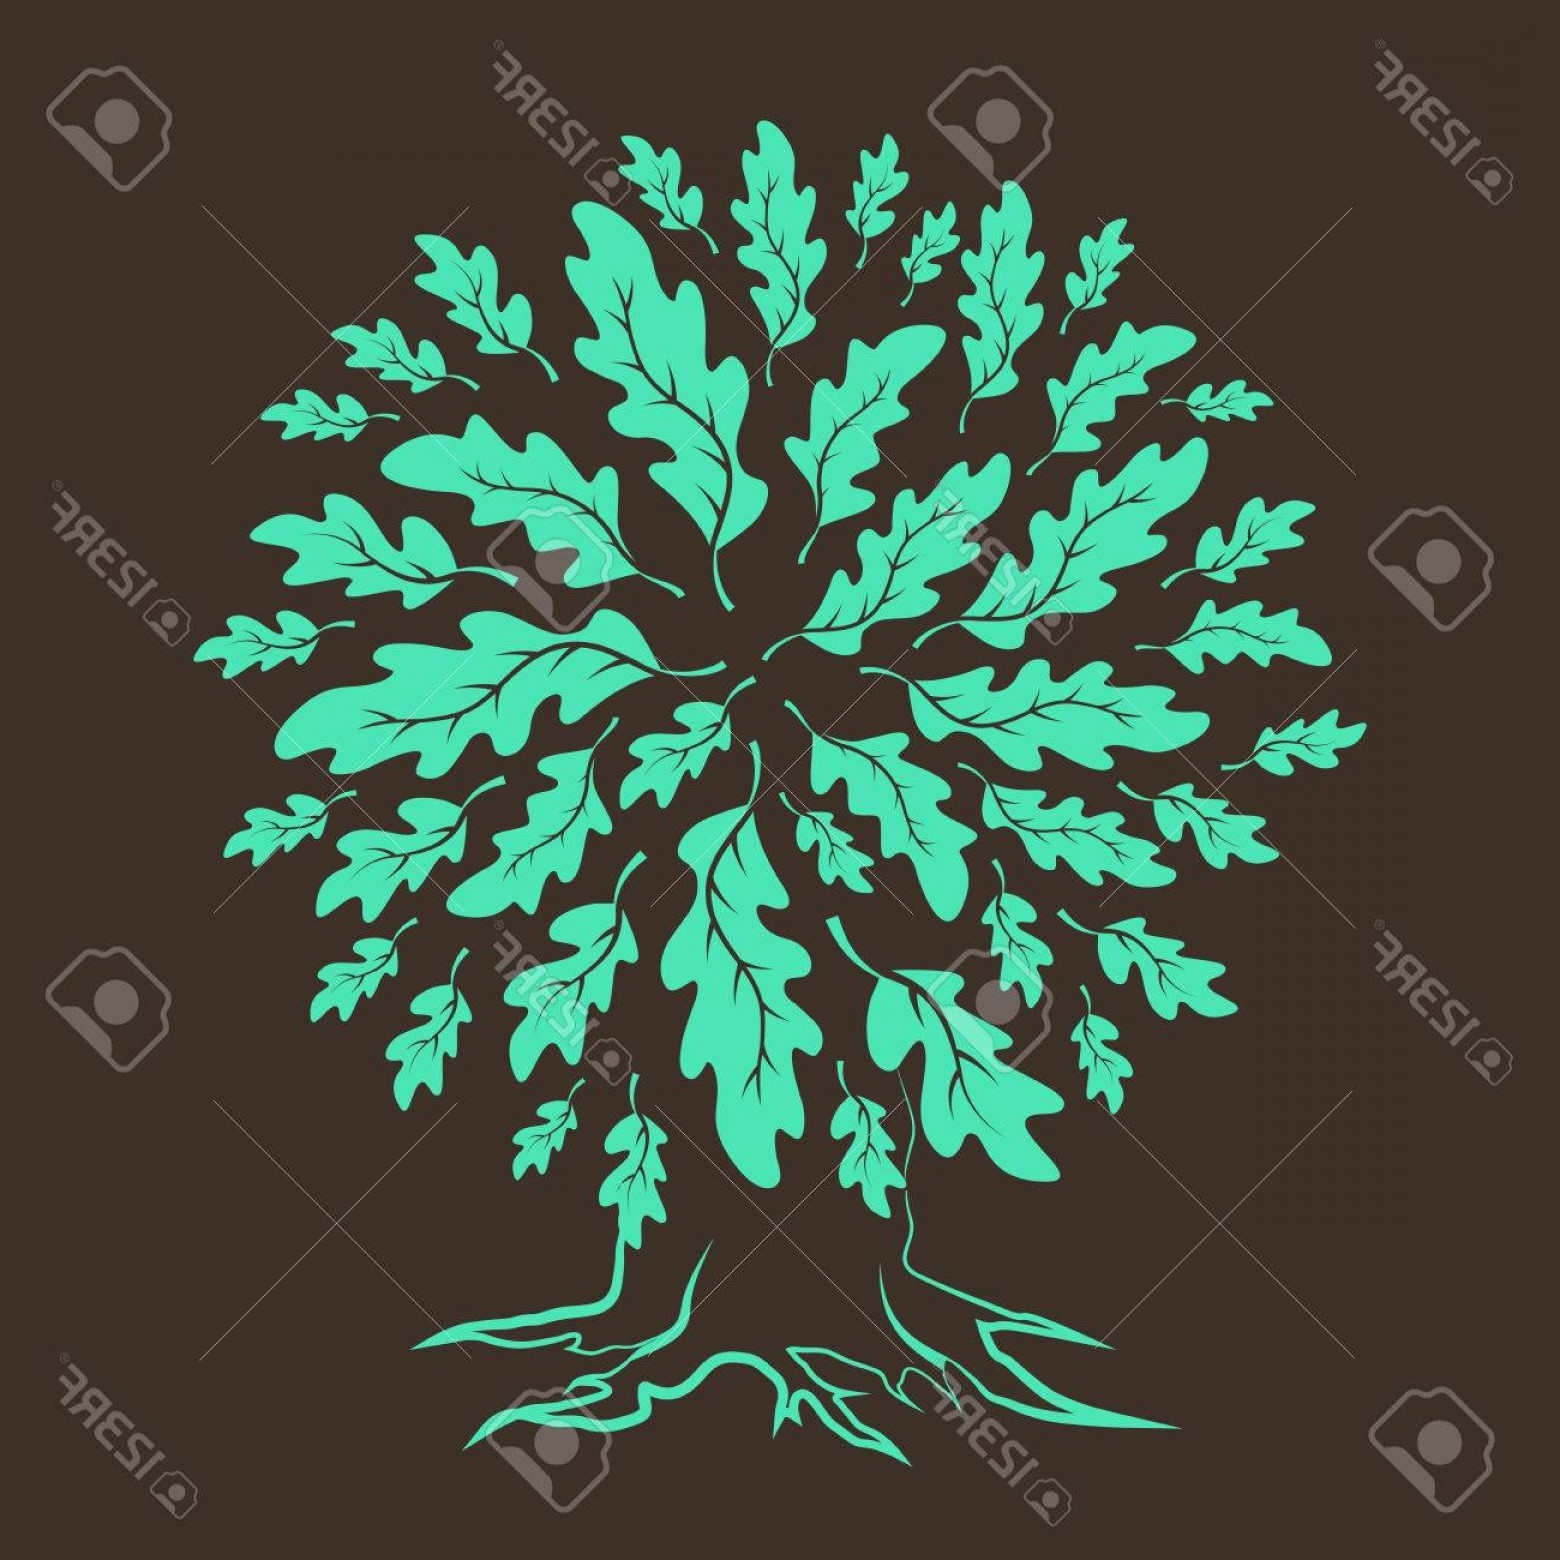 Oak Tree Silhouette Vector Graphics: Photostock Vector Beautiful Oak Tree Silhouette Isolated On Brown Background